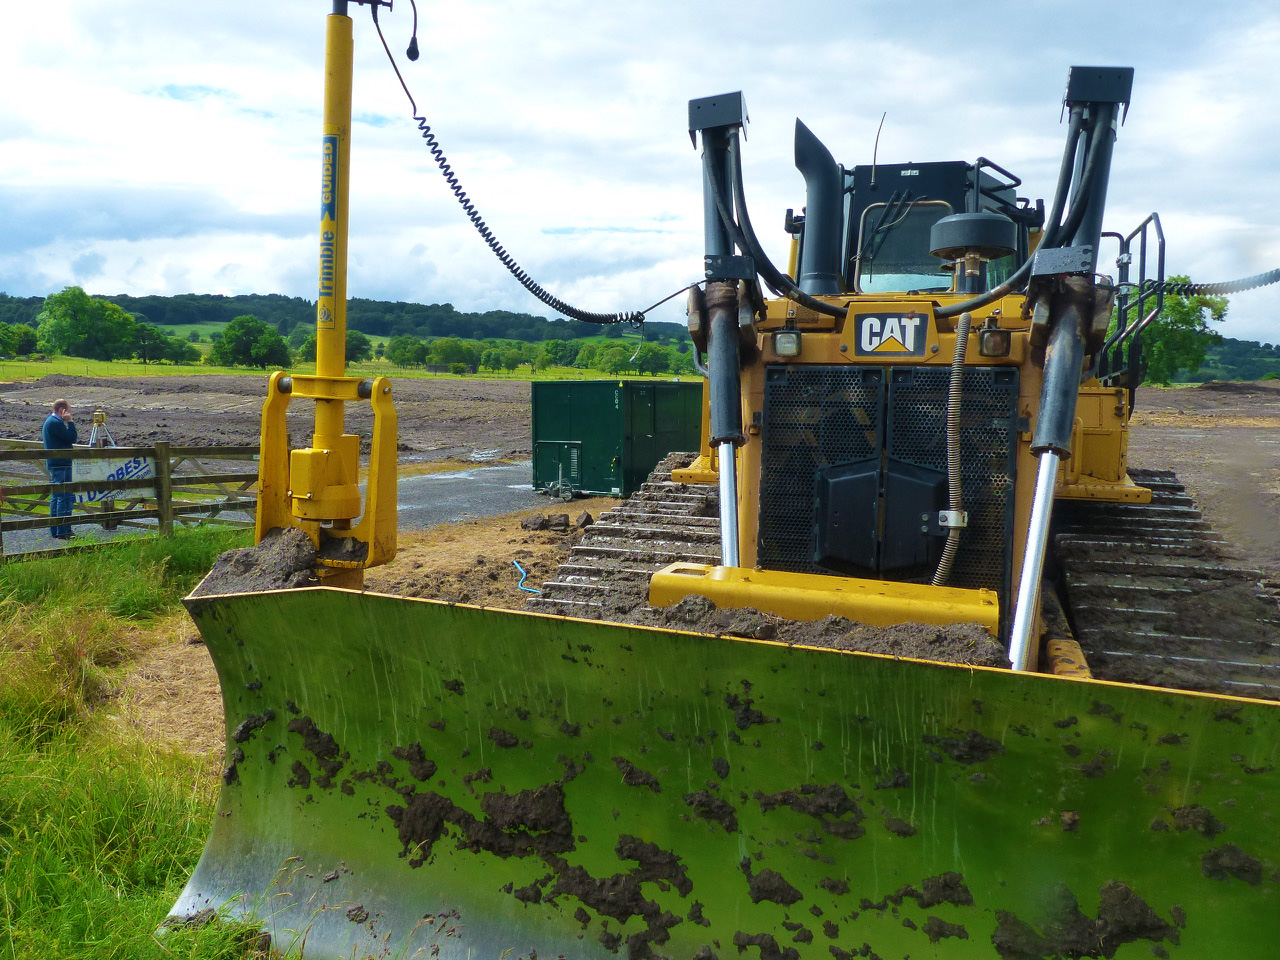 The pitch was constructed using CAT bulldozers fitted with laser-control systems linked to the 3D design model via computer software - to ensure optimal accuracy.